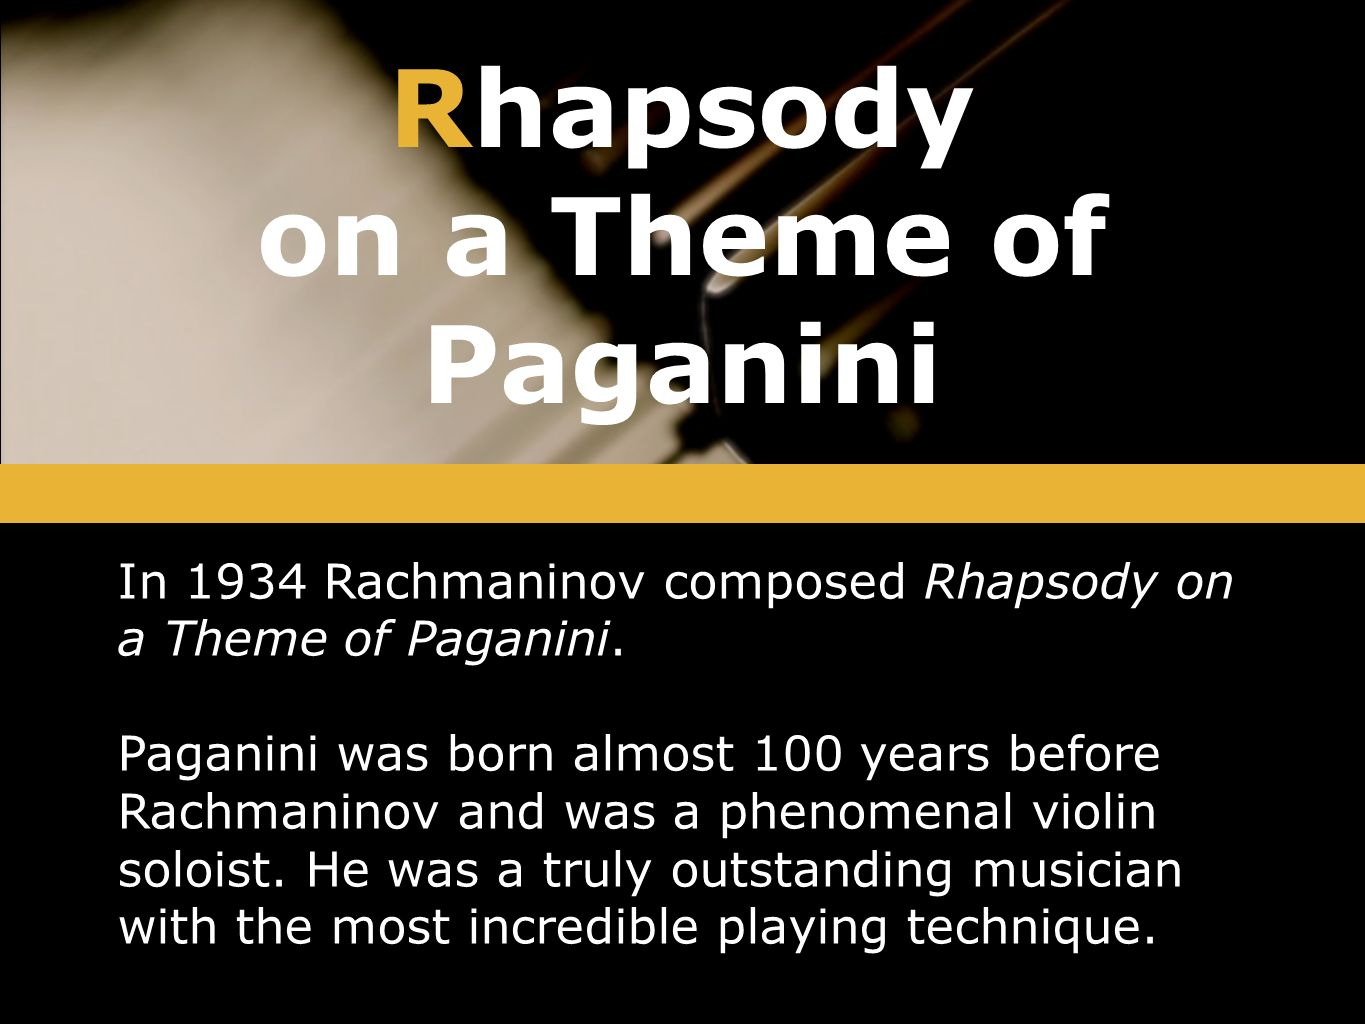 Rhapsody on a Theme of Paganini In 1934 Rachmaninov composed Rhapsody on a Theme of Paganini.